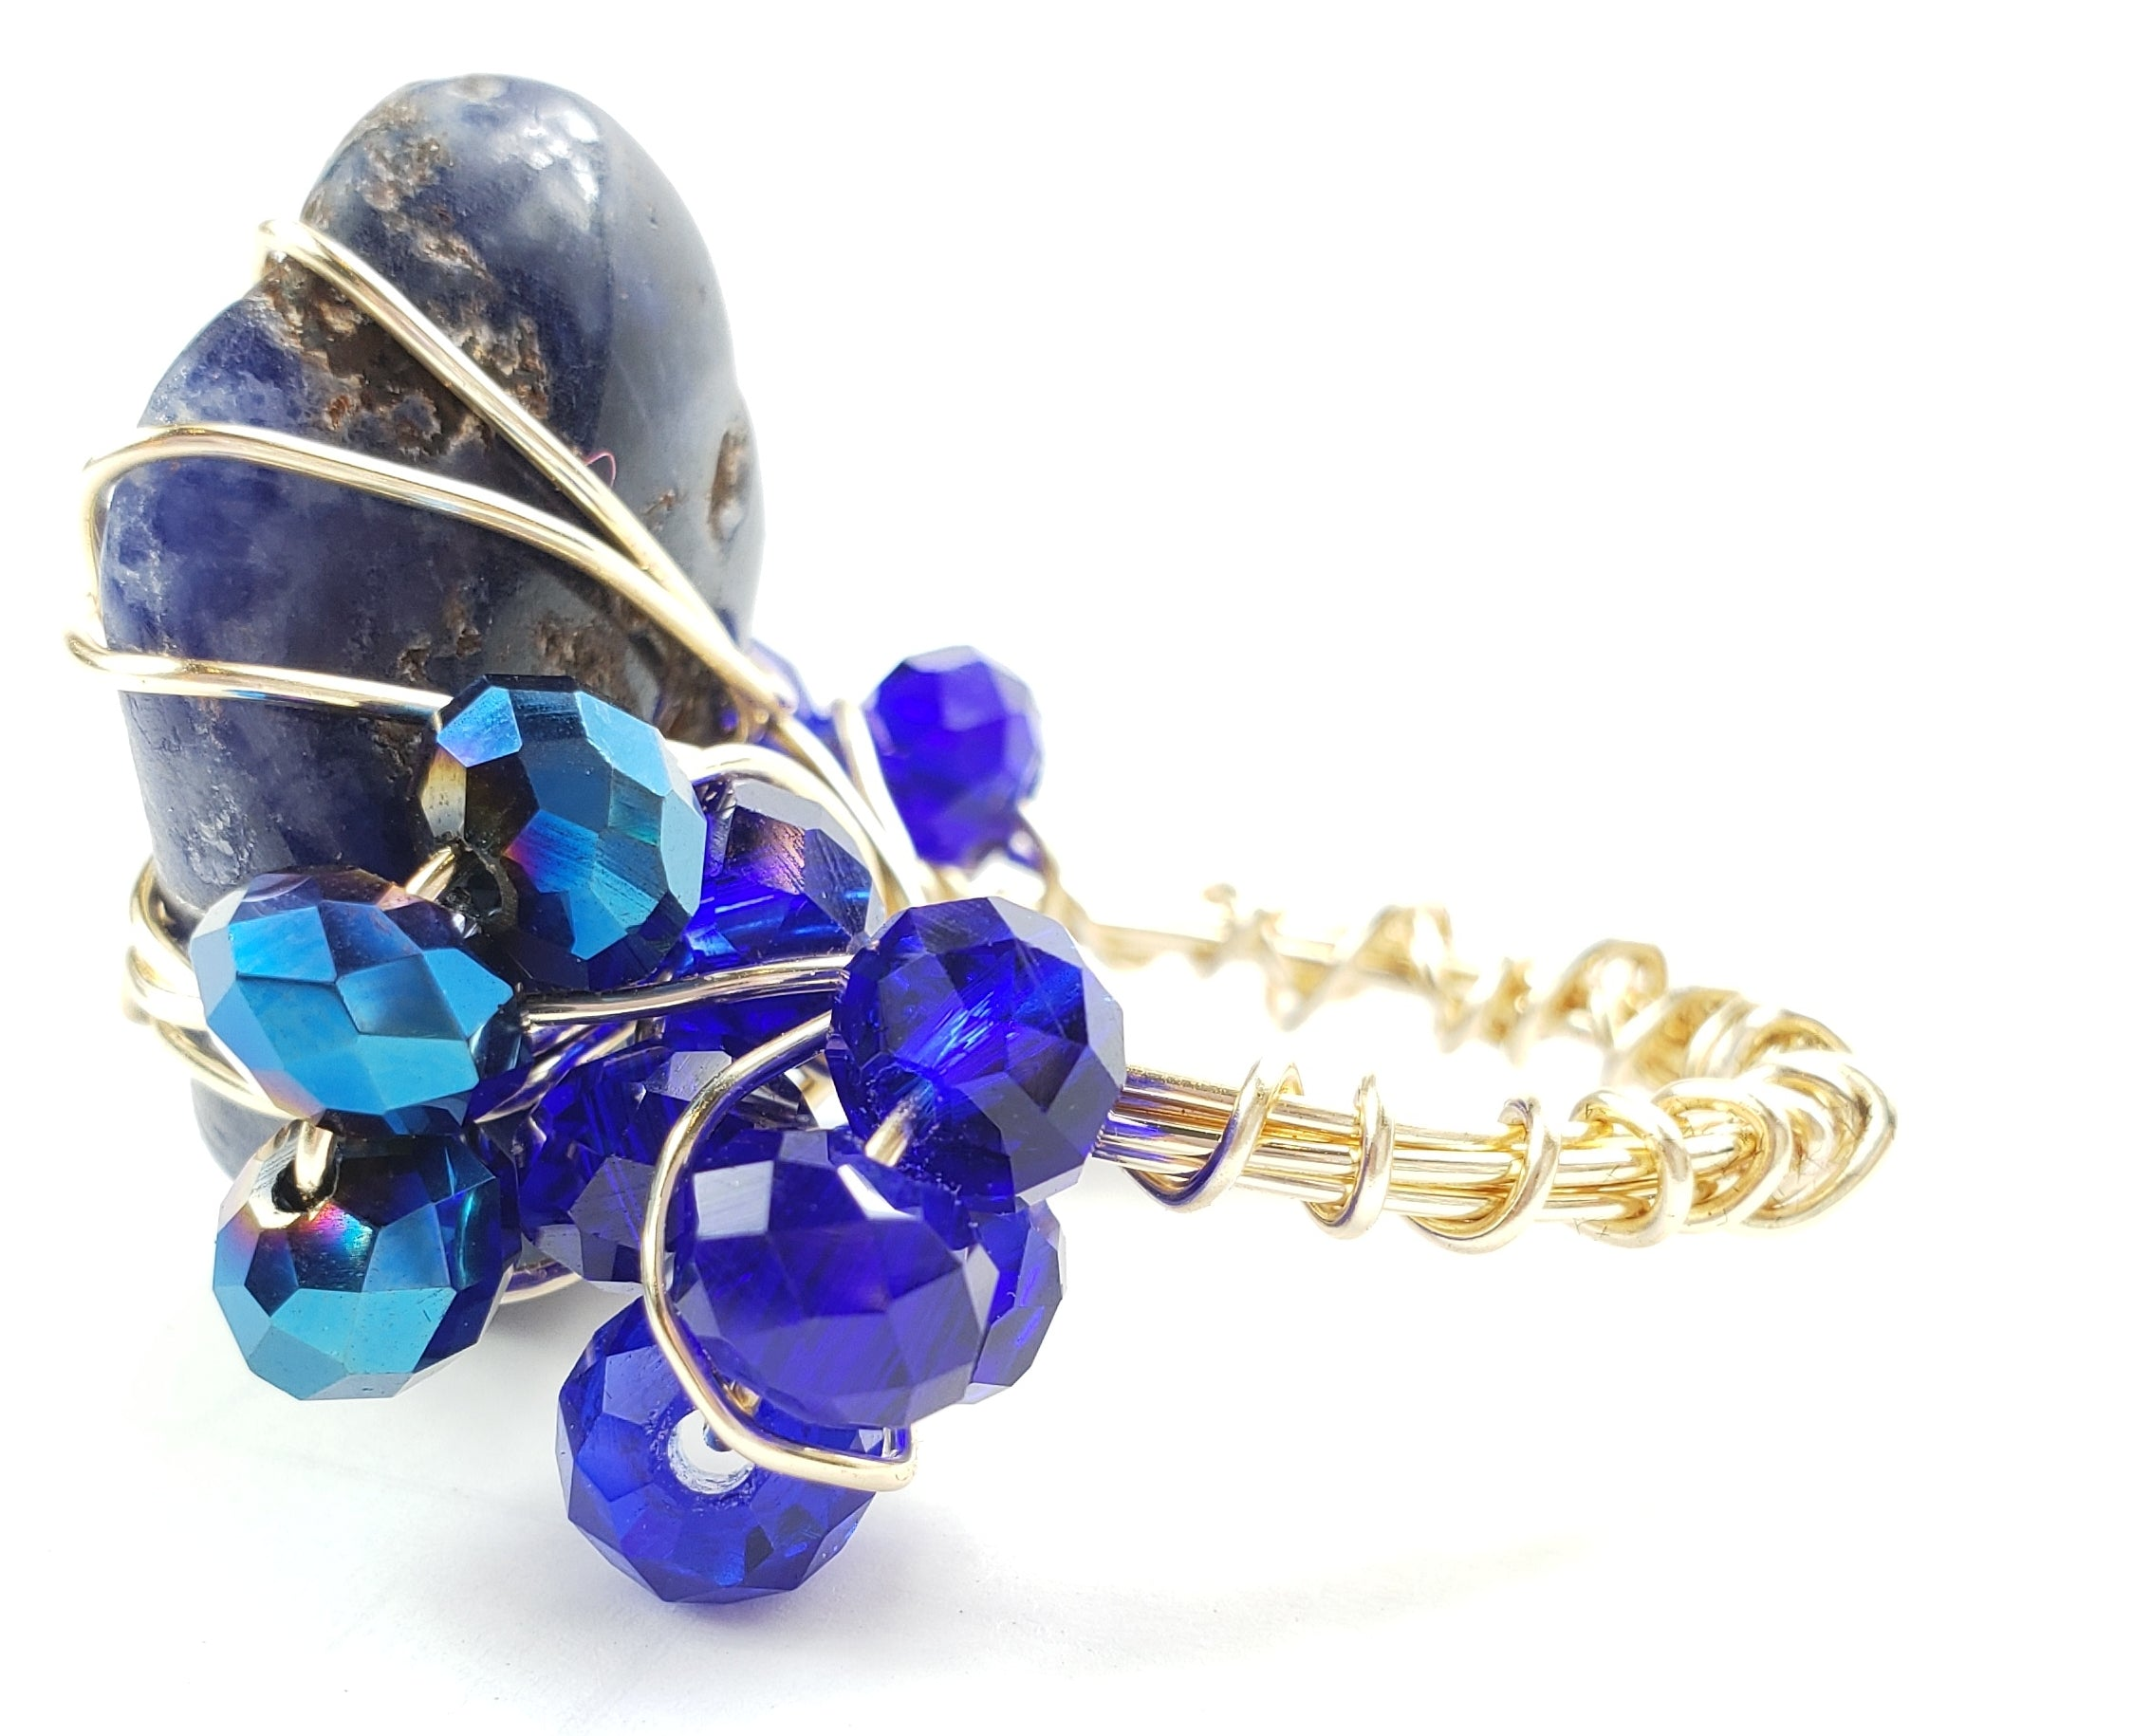 Sodalite stone galaxy ring~ one of a kind crystal jewelry